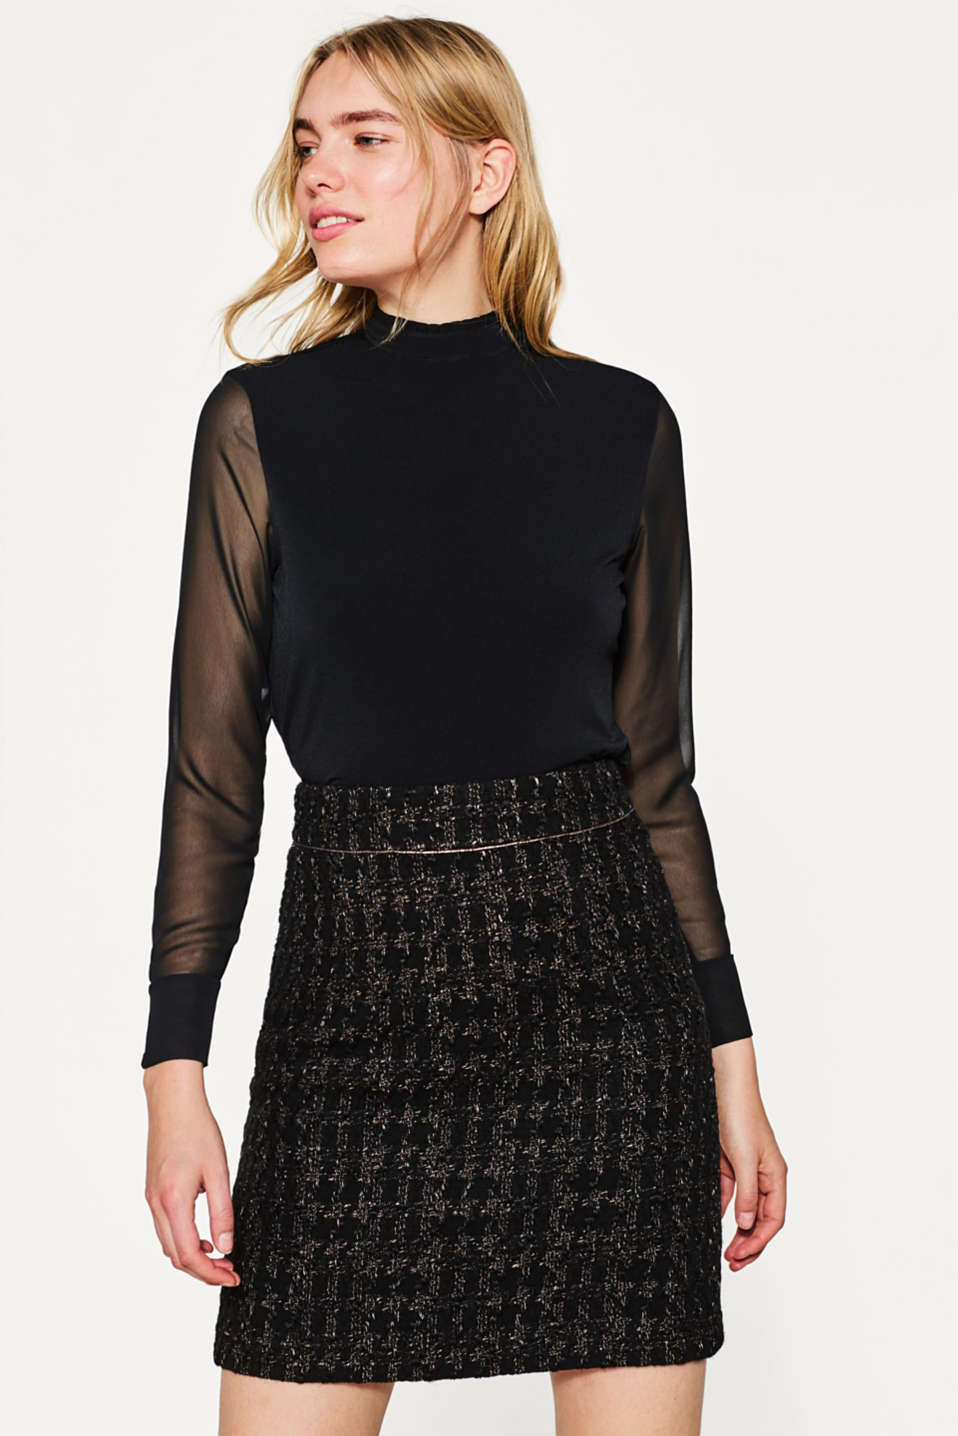 Esprit - Firm bouclé skirt in a glitter look